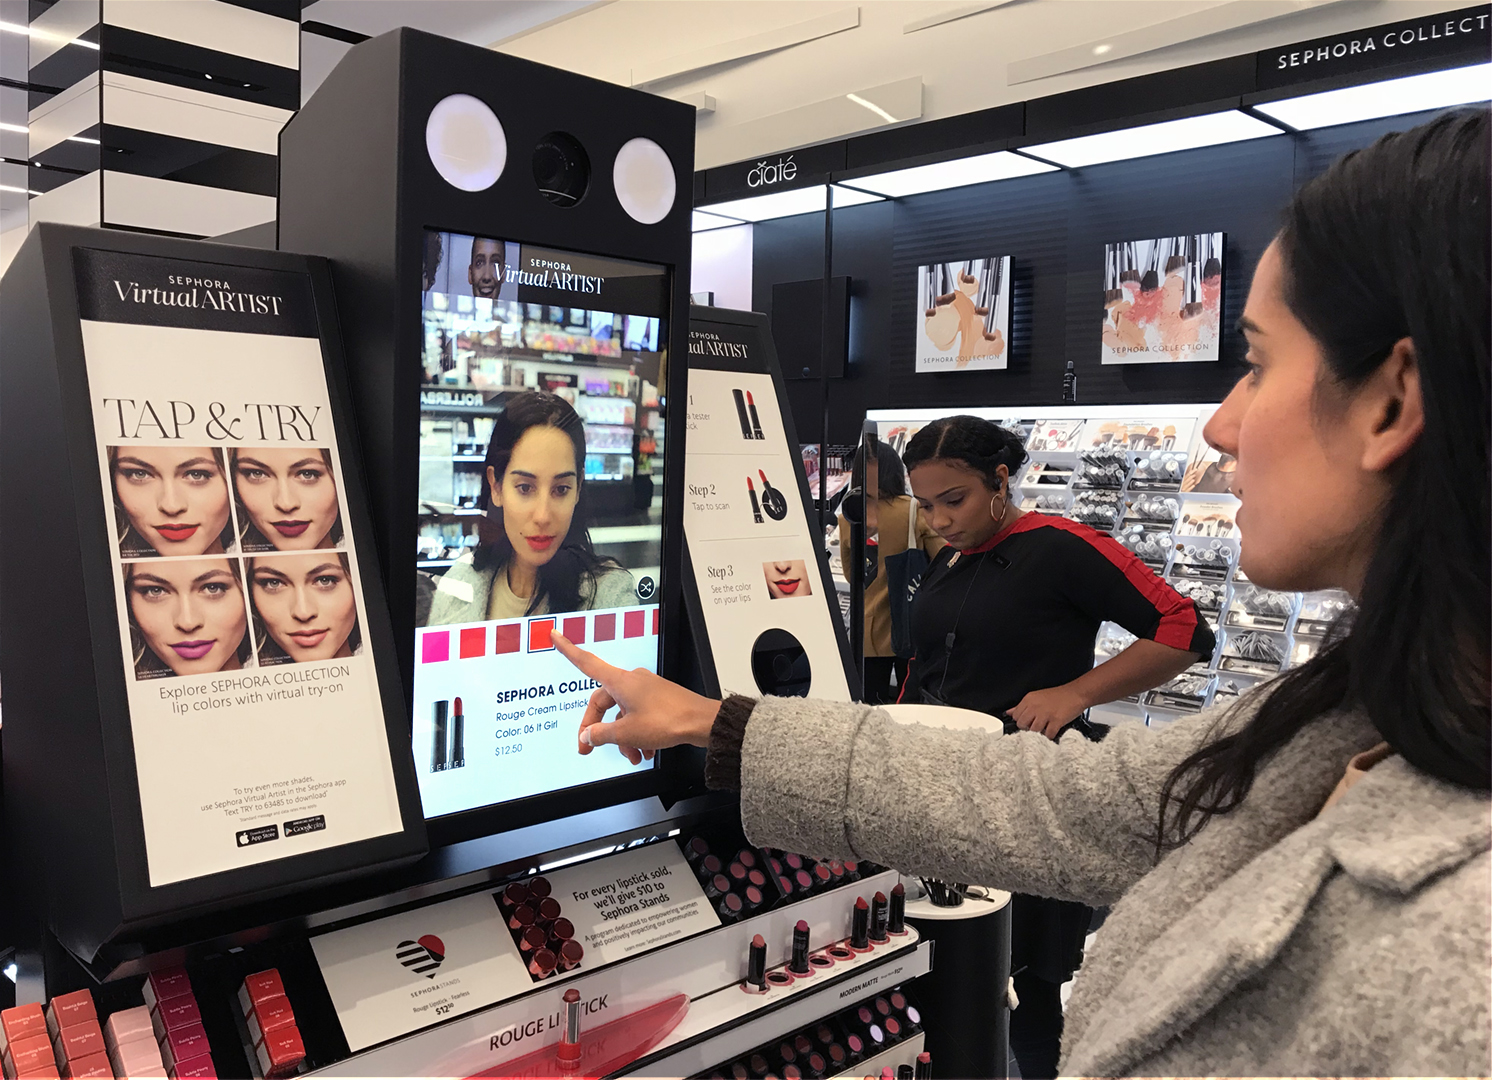 Sephora — Perch - Retail Marketing Lift-And-Learn Digital Signage, Kiosks,  and In-Store Analytics Software